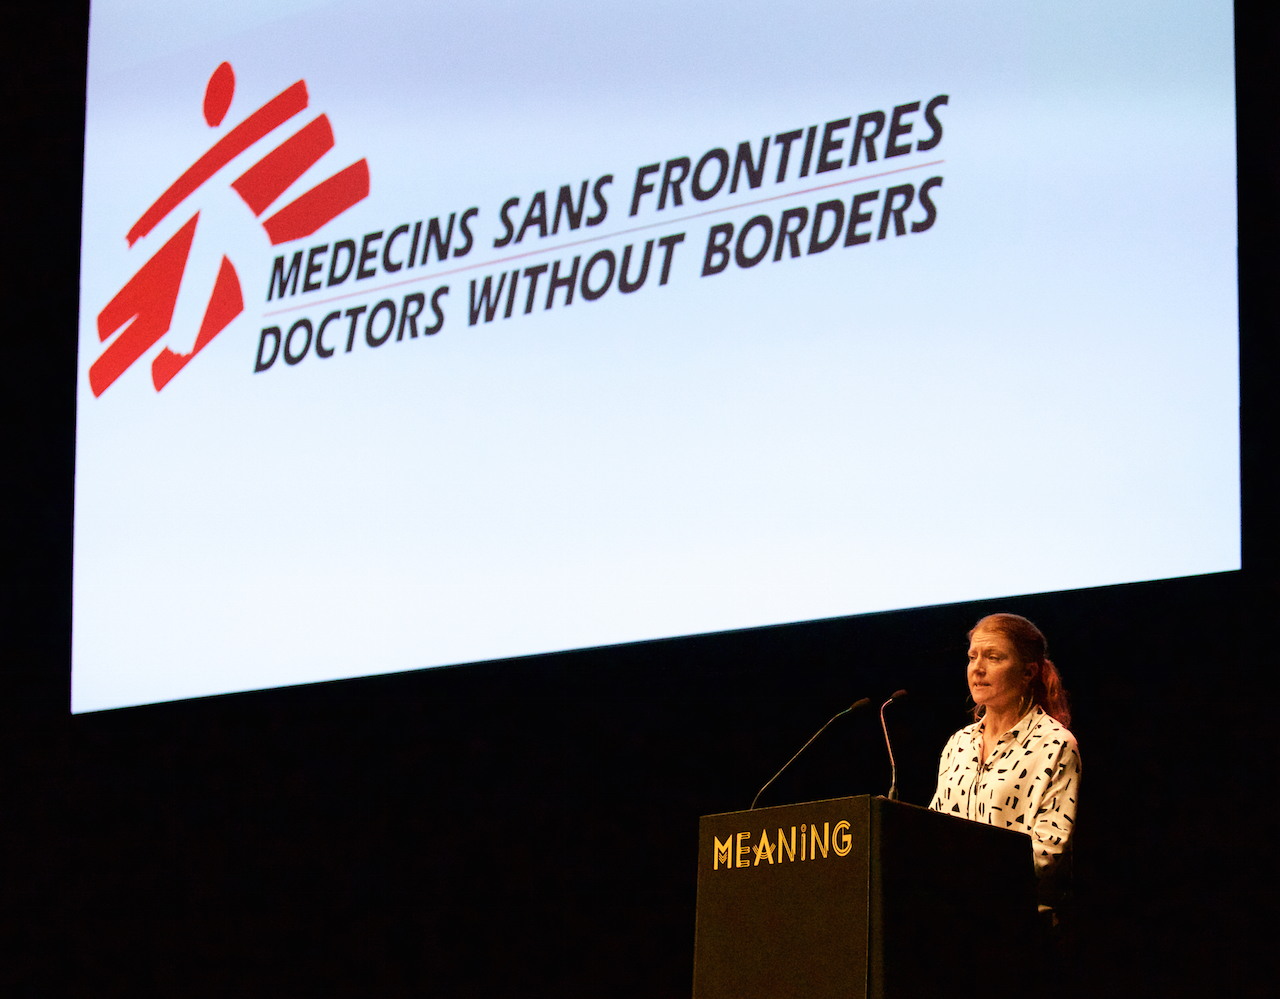 Vickie Hawkins at Meaning 2017, speaking about MSF's response to the refugee crisis. ©Clive Andrews